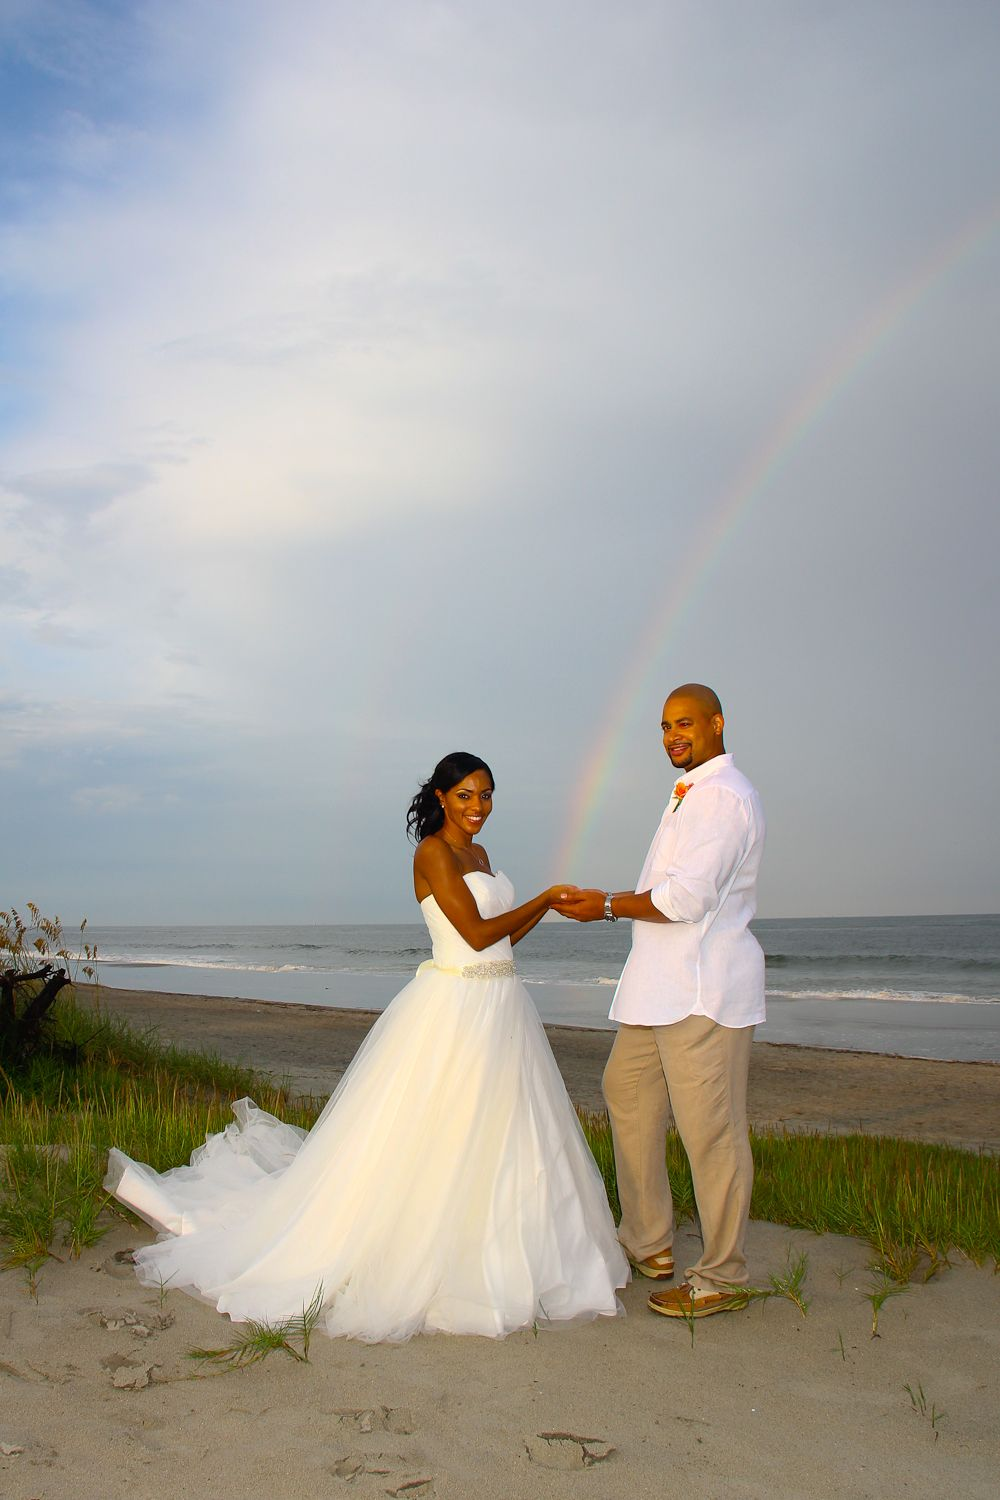 Tybee Island Beach Wedding Bride And Groom With Rainbow